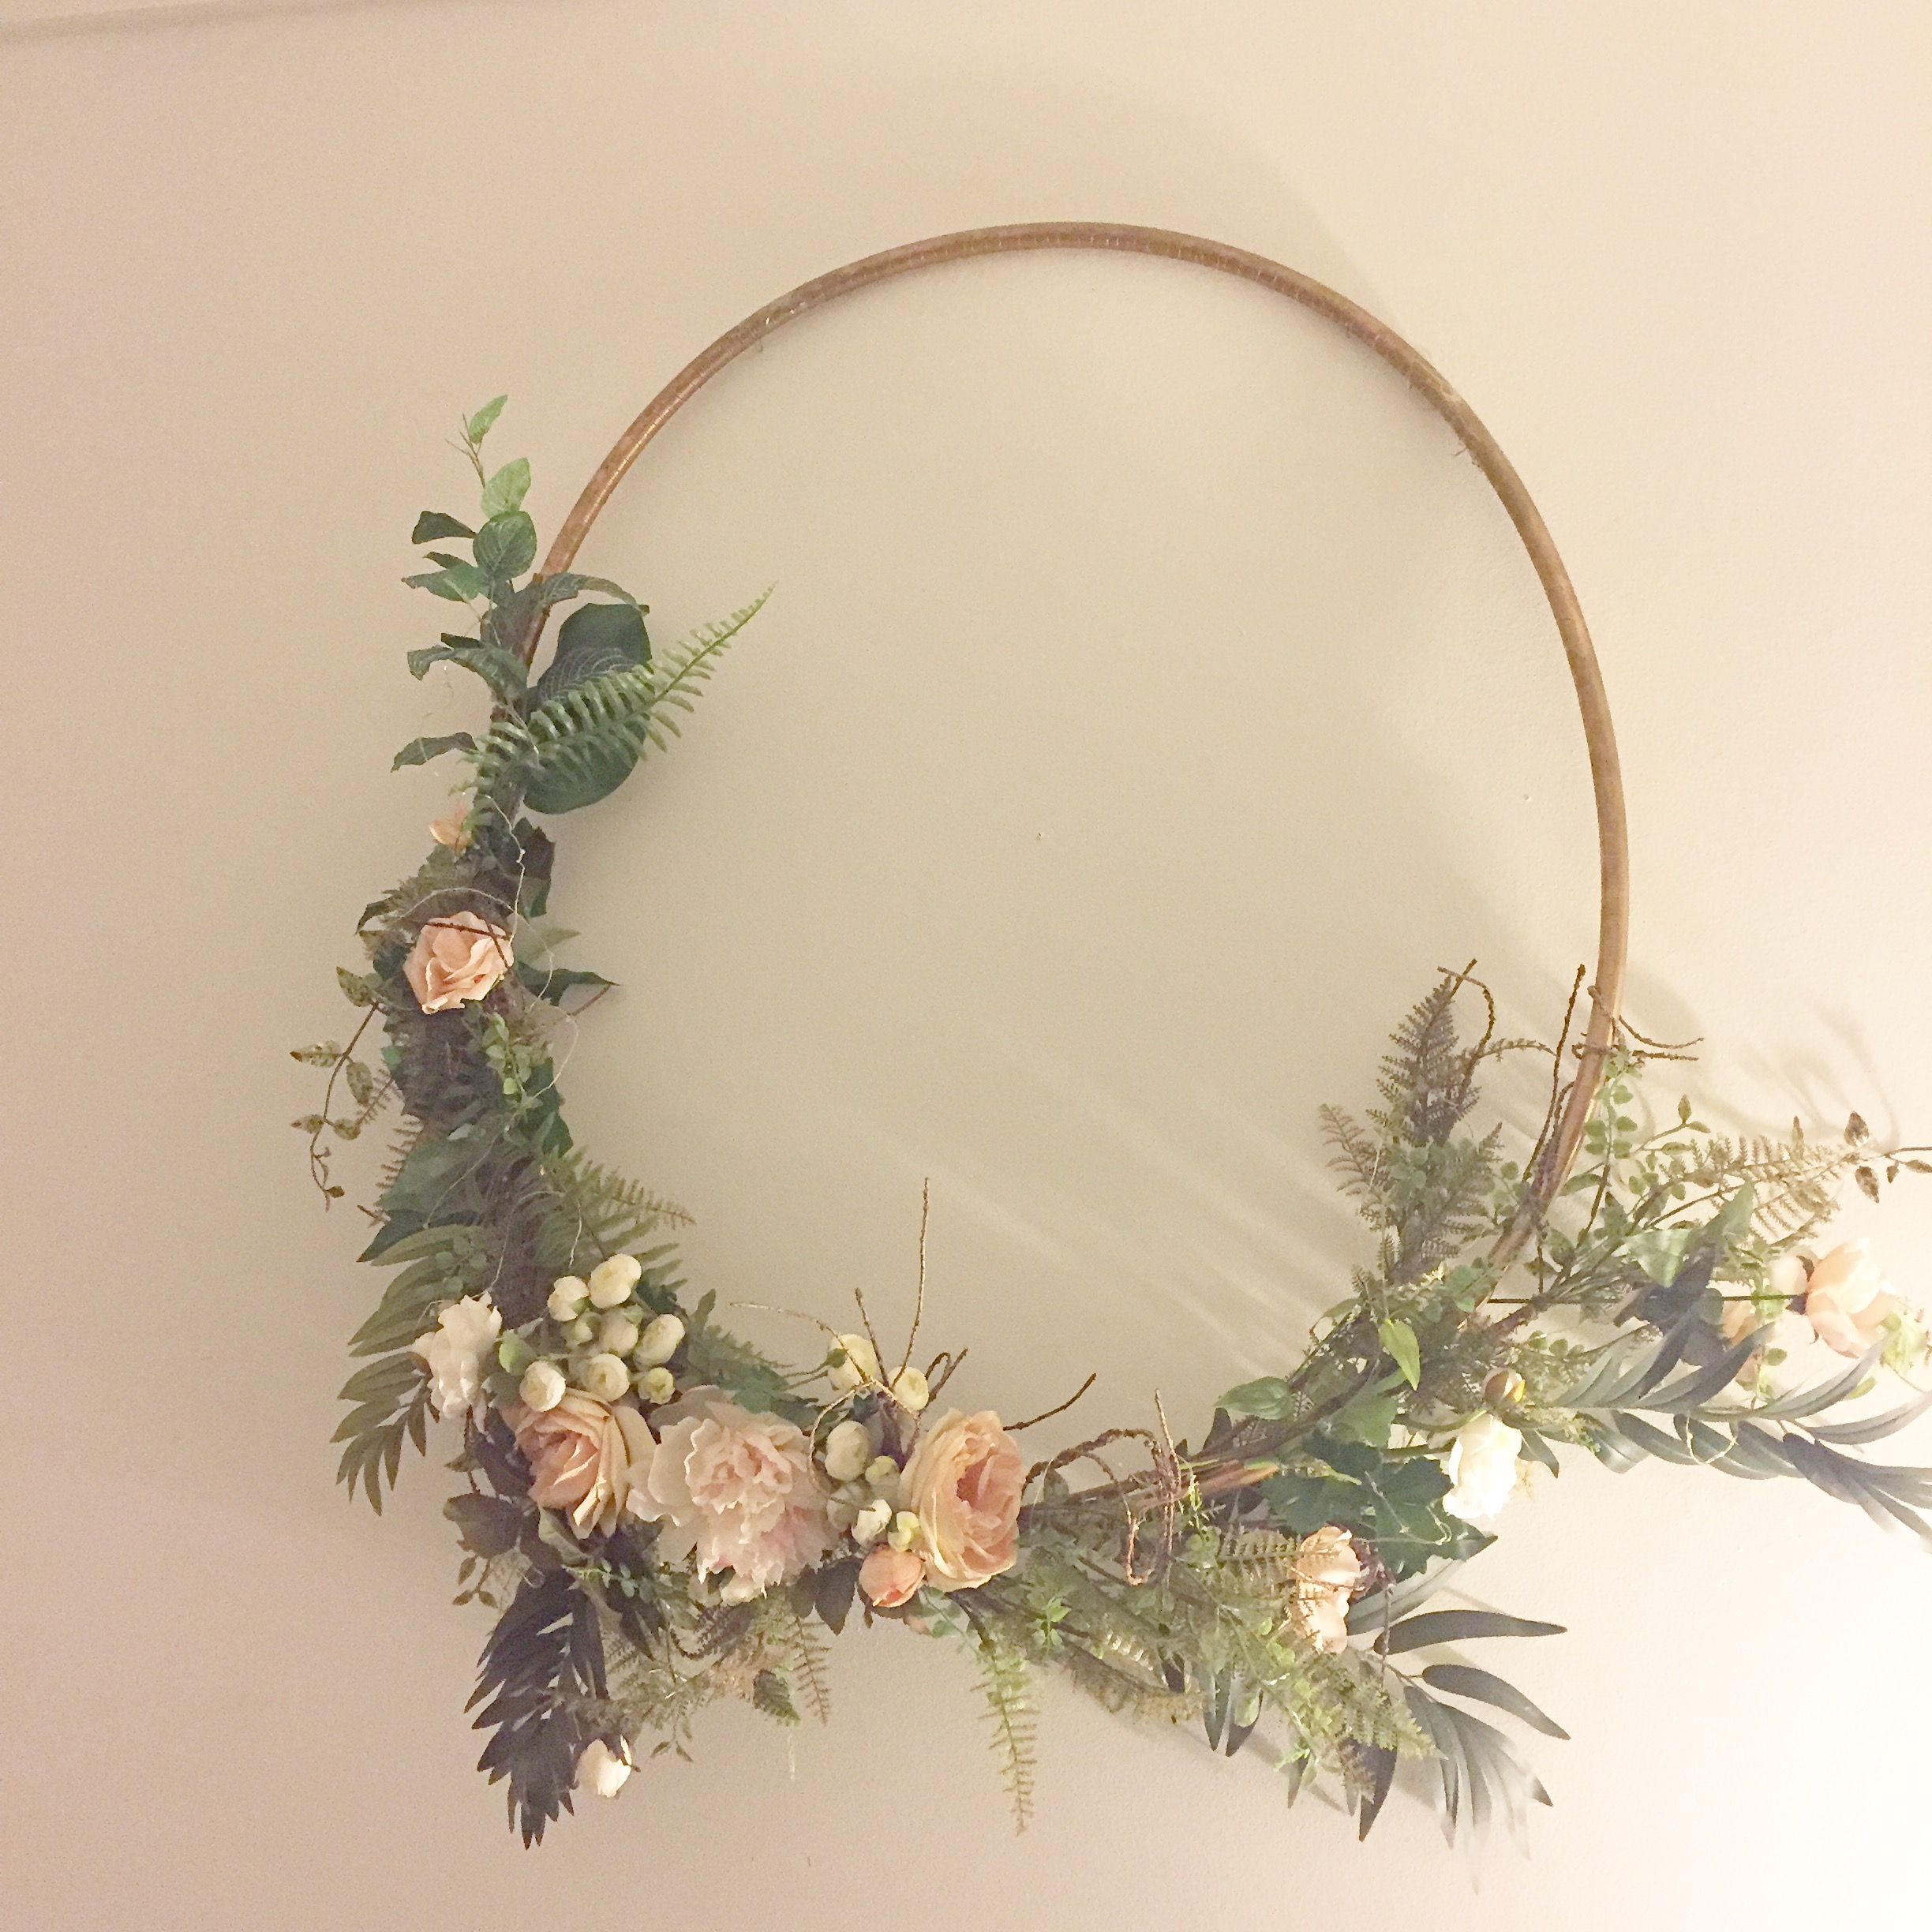 Floral wreaths for weddings showers or home decor this for Hula hoop decorations